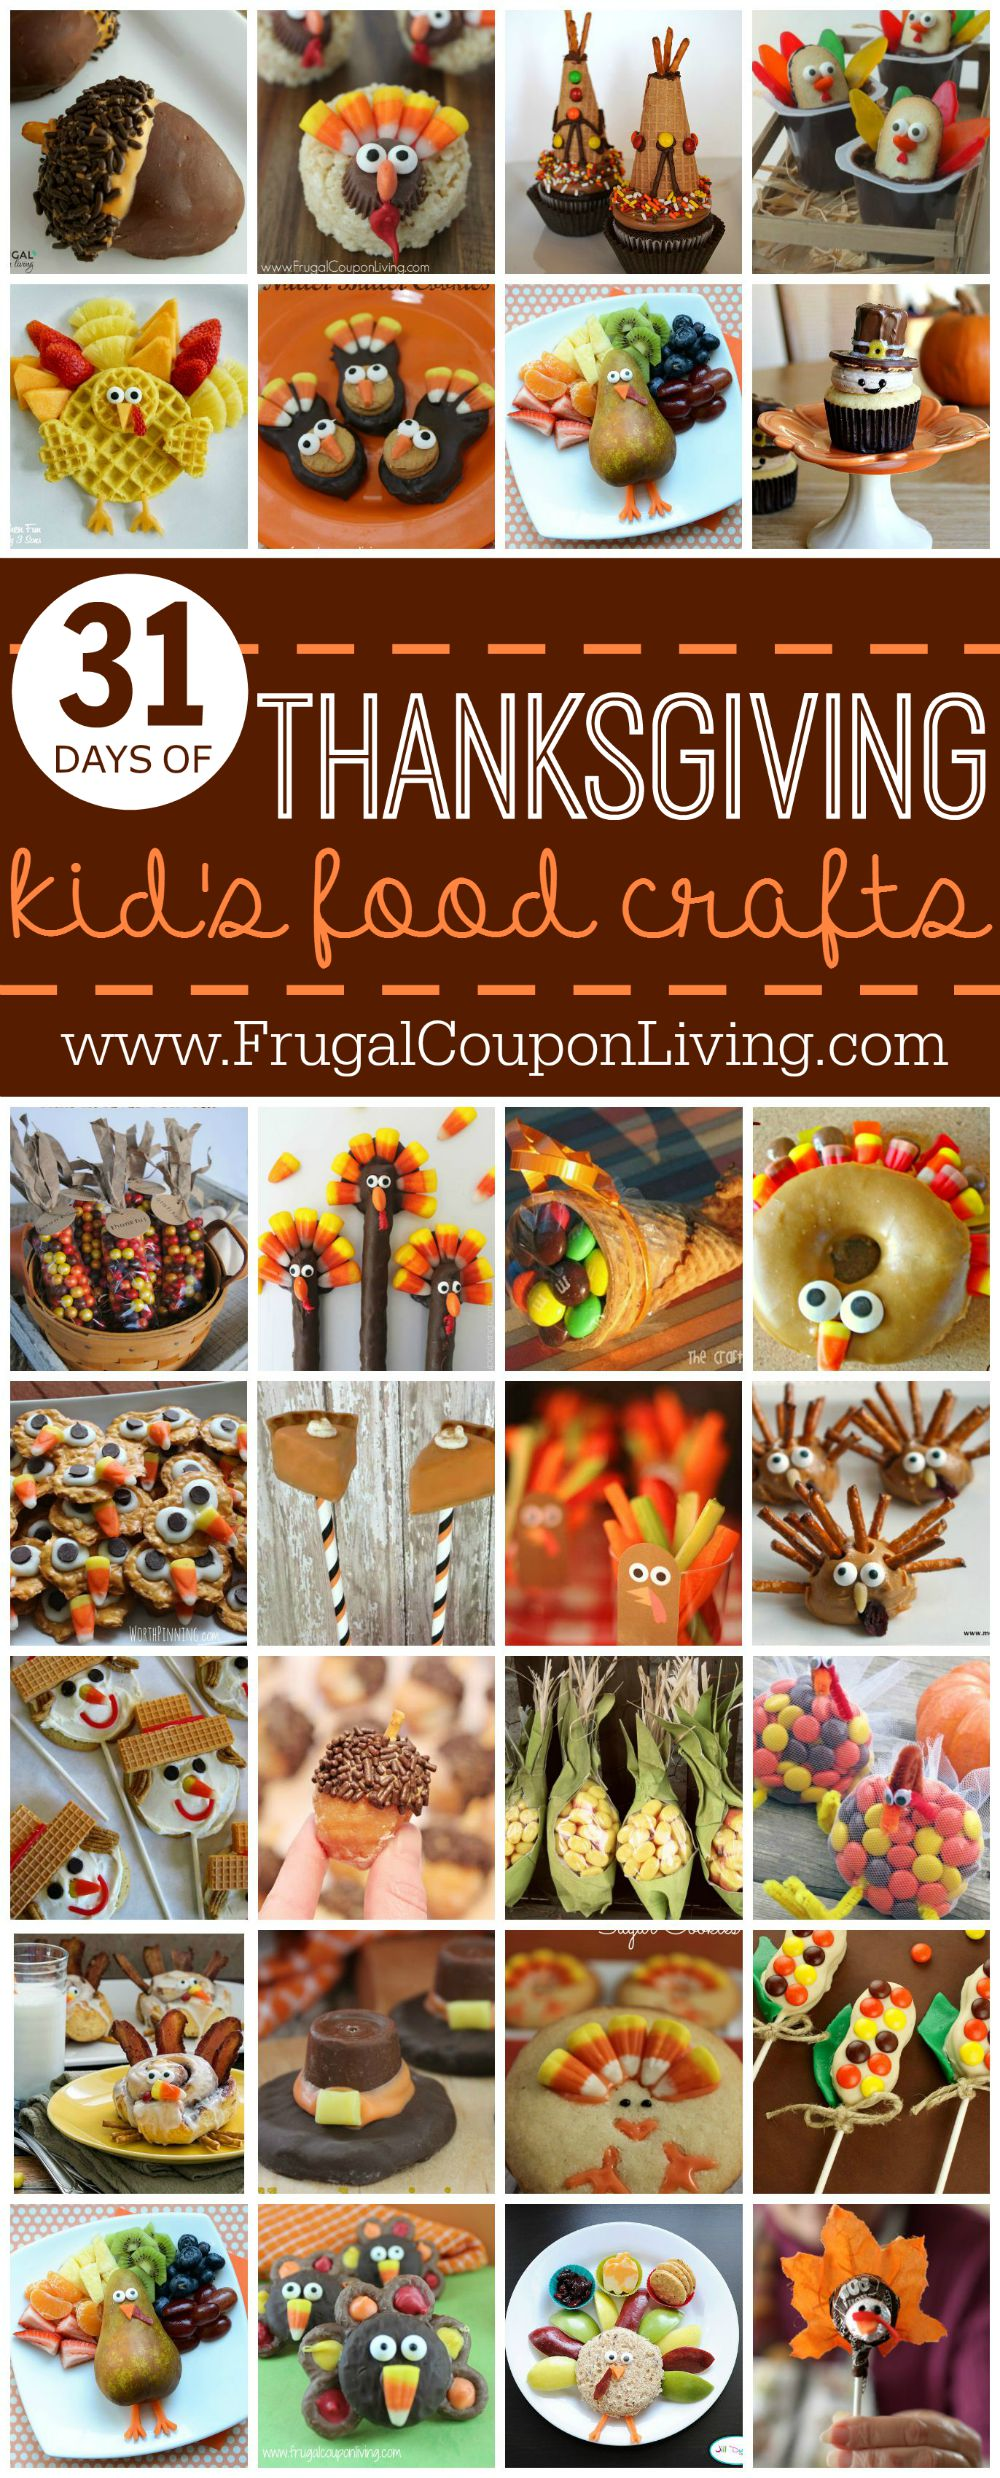 Thanksgiving Kids Food Crafts on Frugal Coupon Living